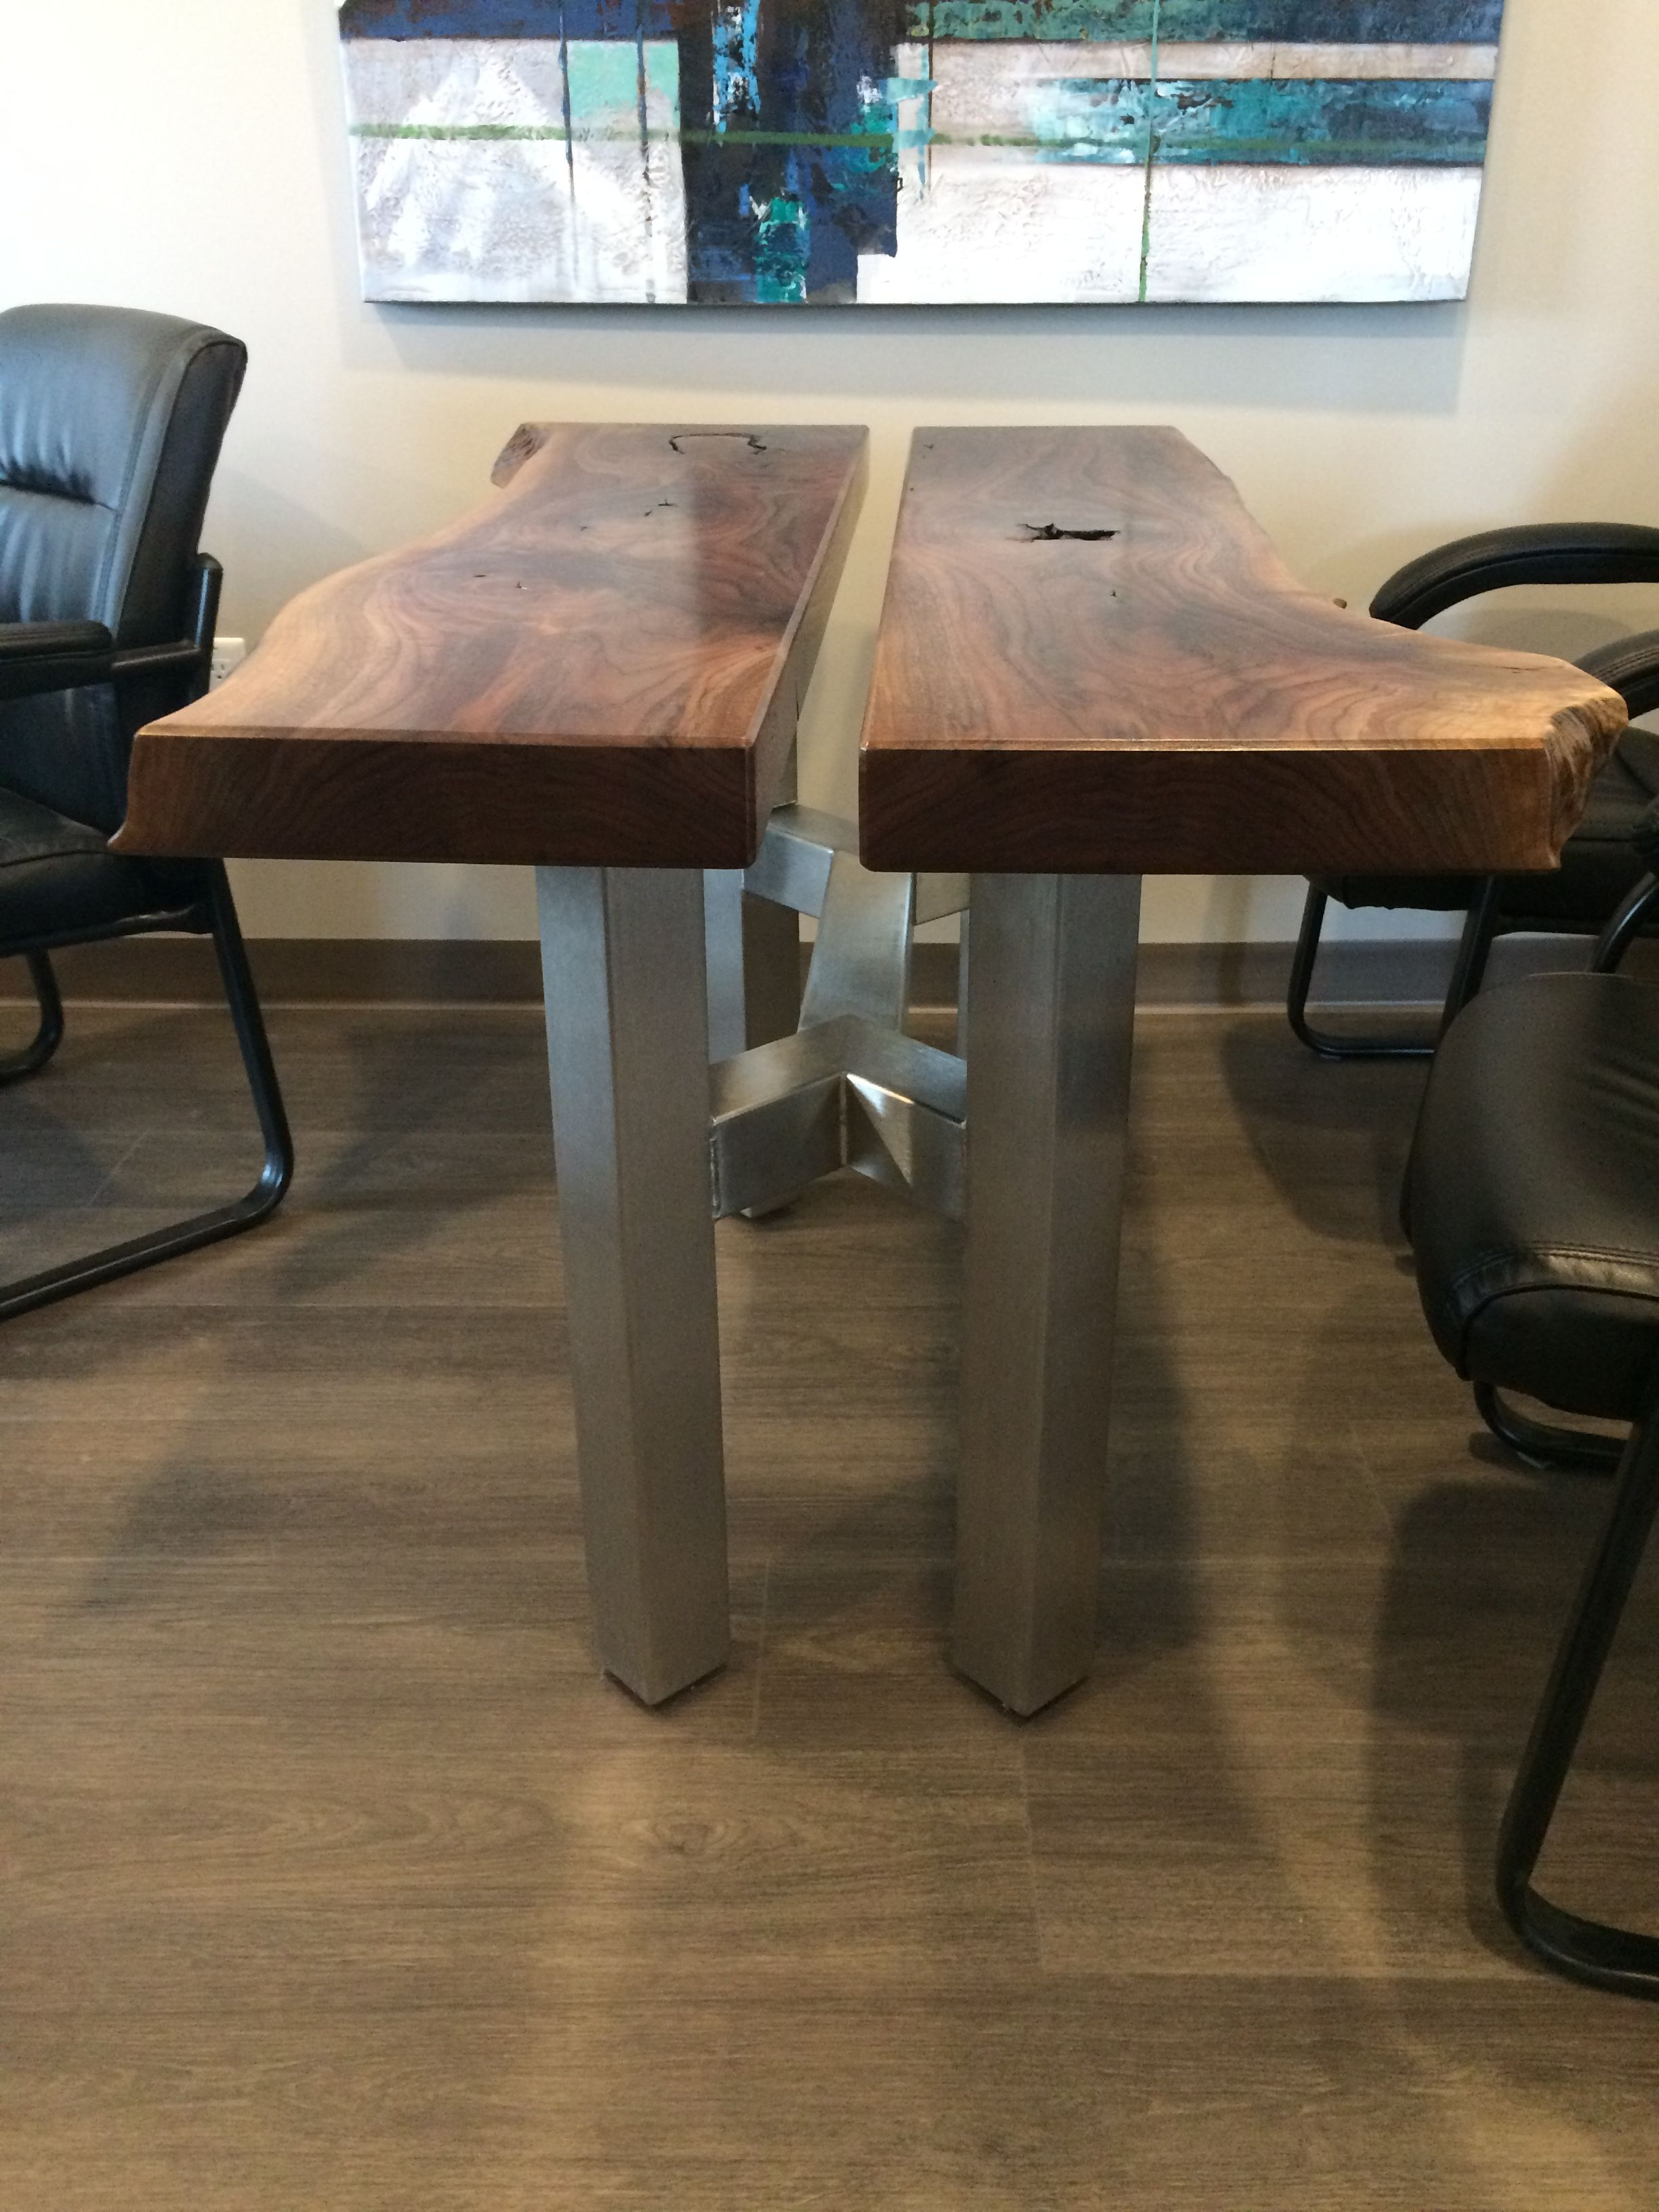 Custom stainless steel and natural wood table. Natural